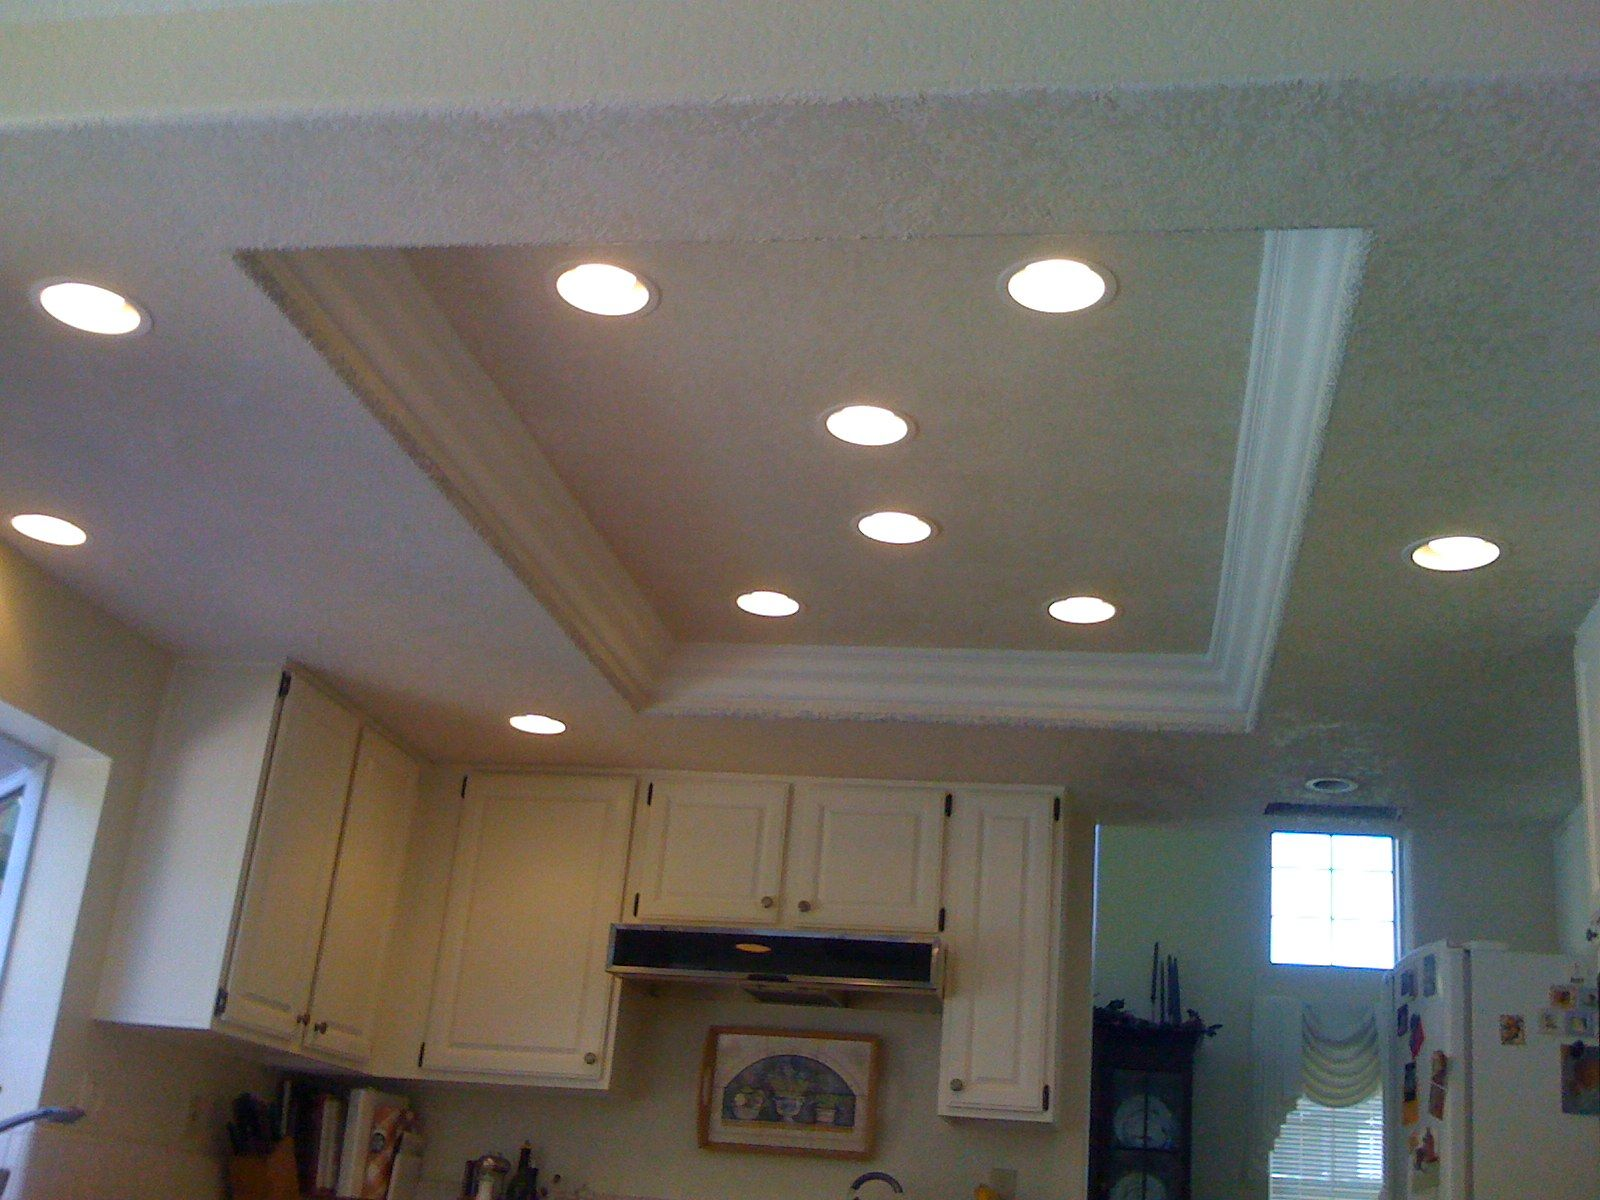 Kitchen Recessed Lighting | lights replace them with recessed ...